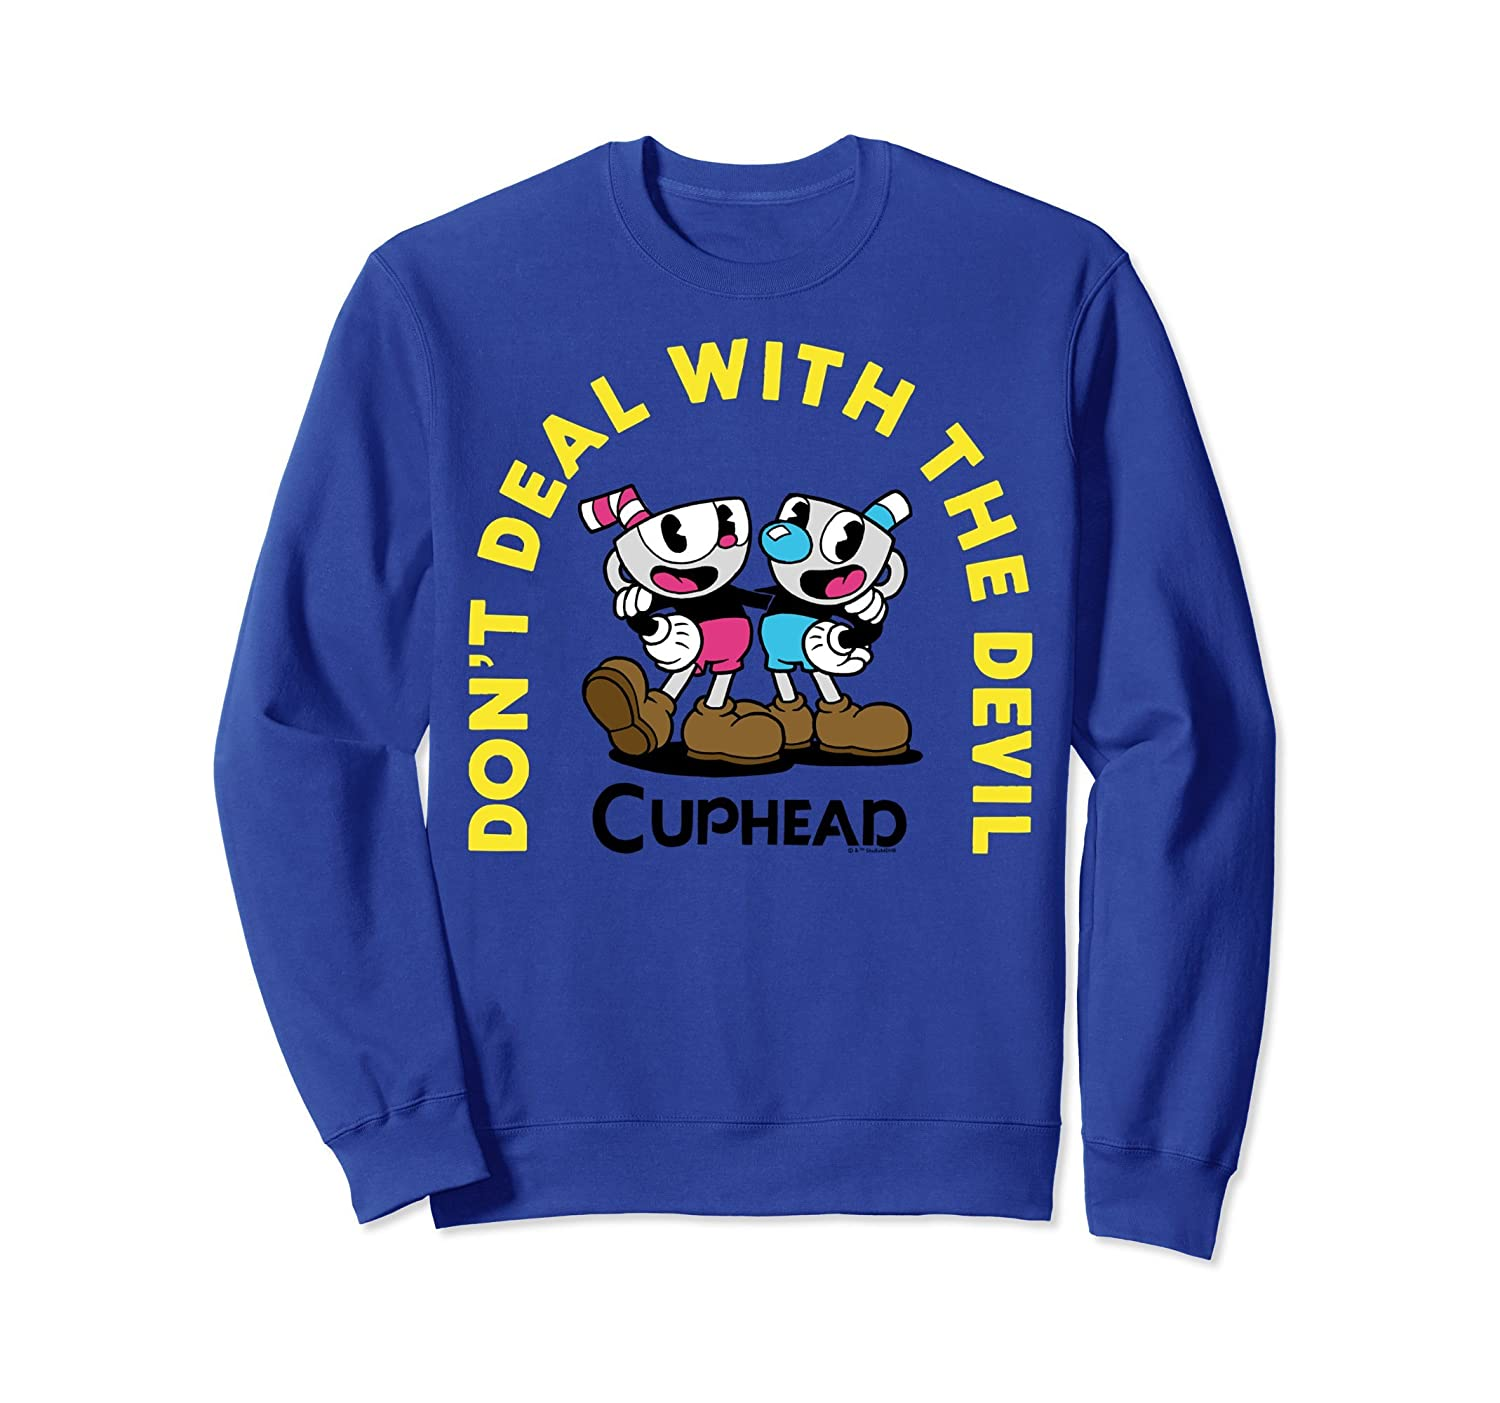 Cuphead Mugman Deal With The Devil Arch Duo Sweatshirt-mt